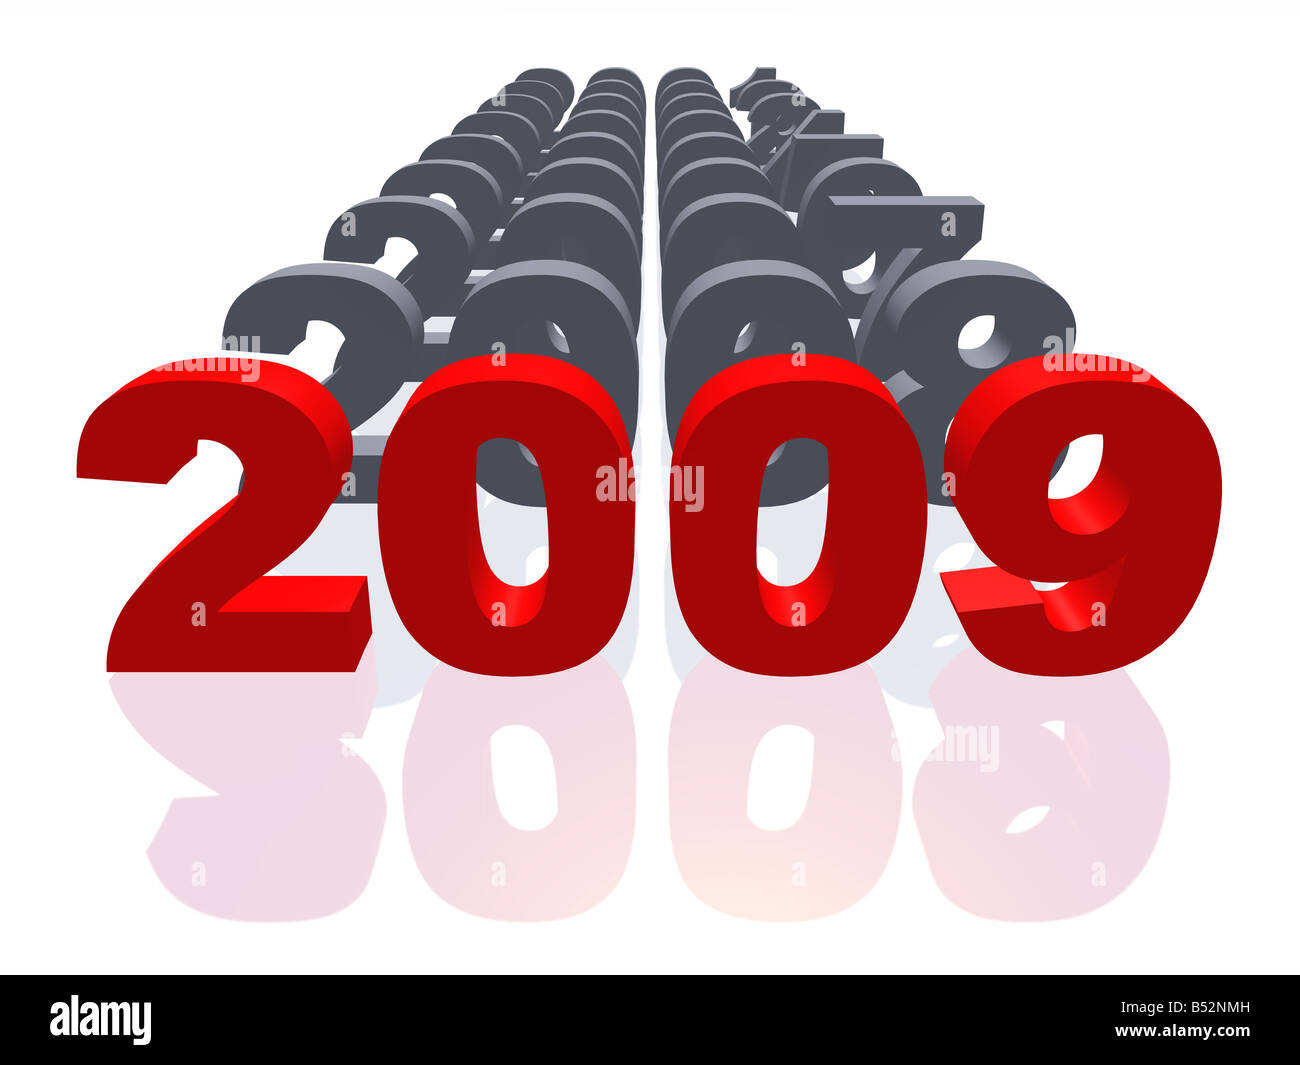 2009 with set of figures symbolizing 2000 2008 Set of figures symbolizing 2000 2008 with 2009 in the foreground - Stock Image